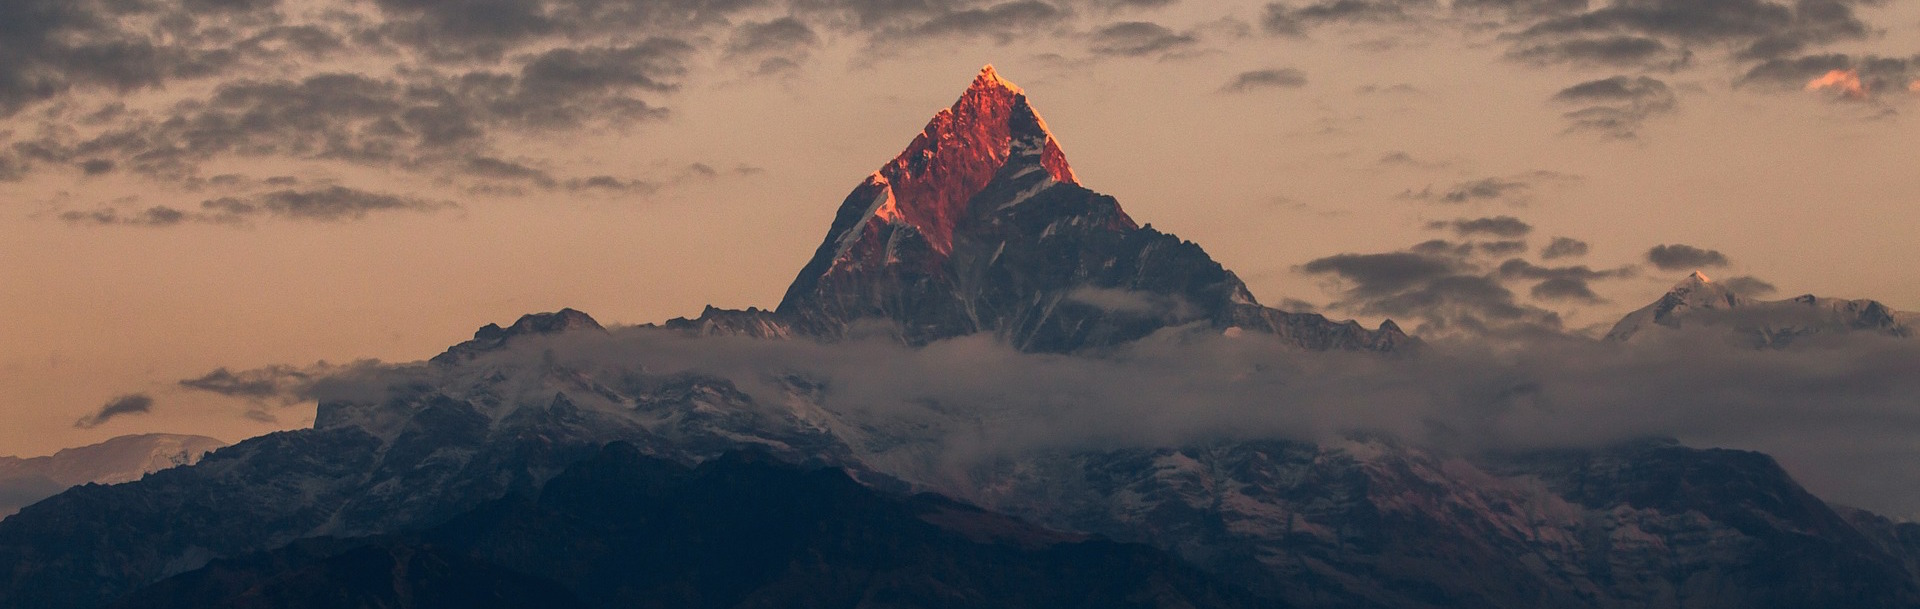 Two Thirds of Glaciers in the Hindu Kush Himalaya Could Melt by 2100